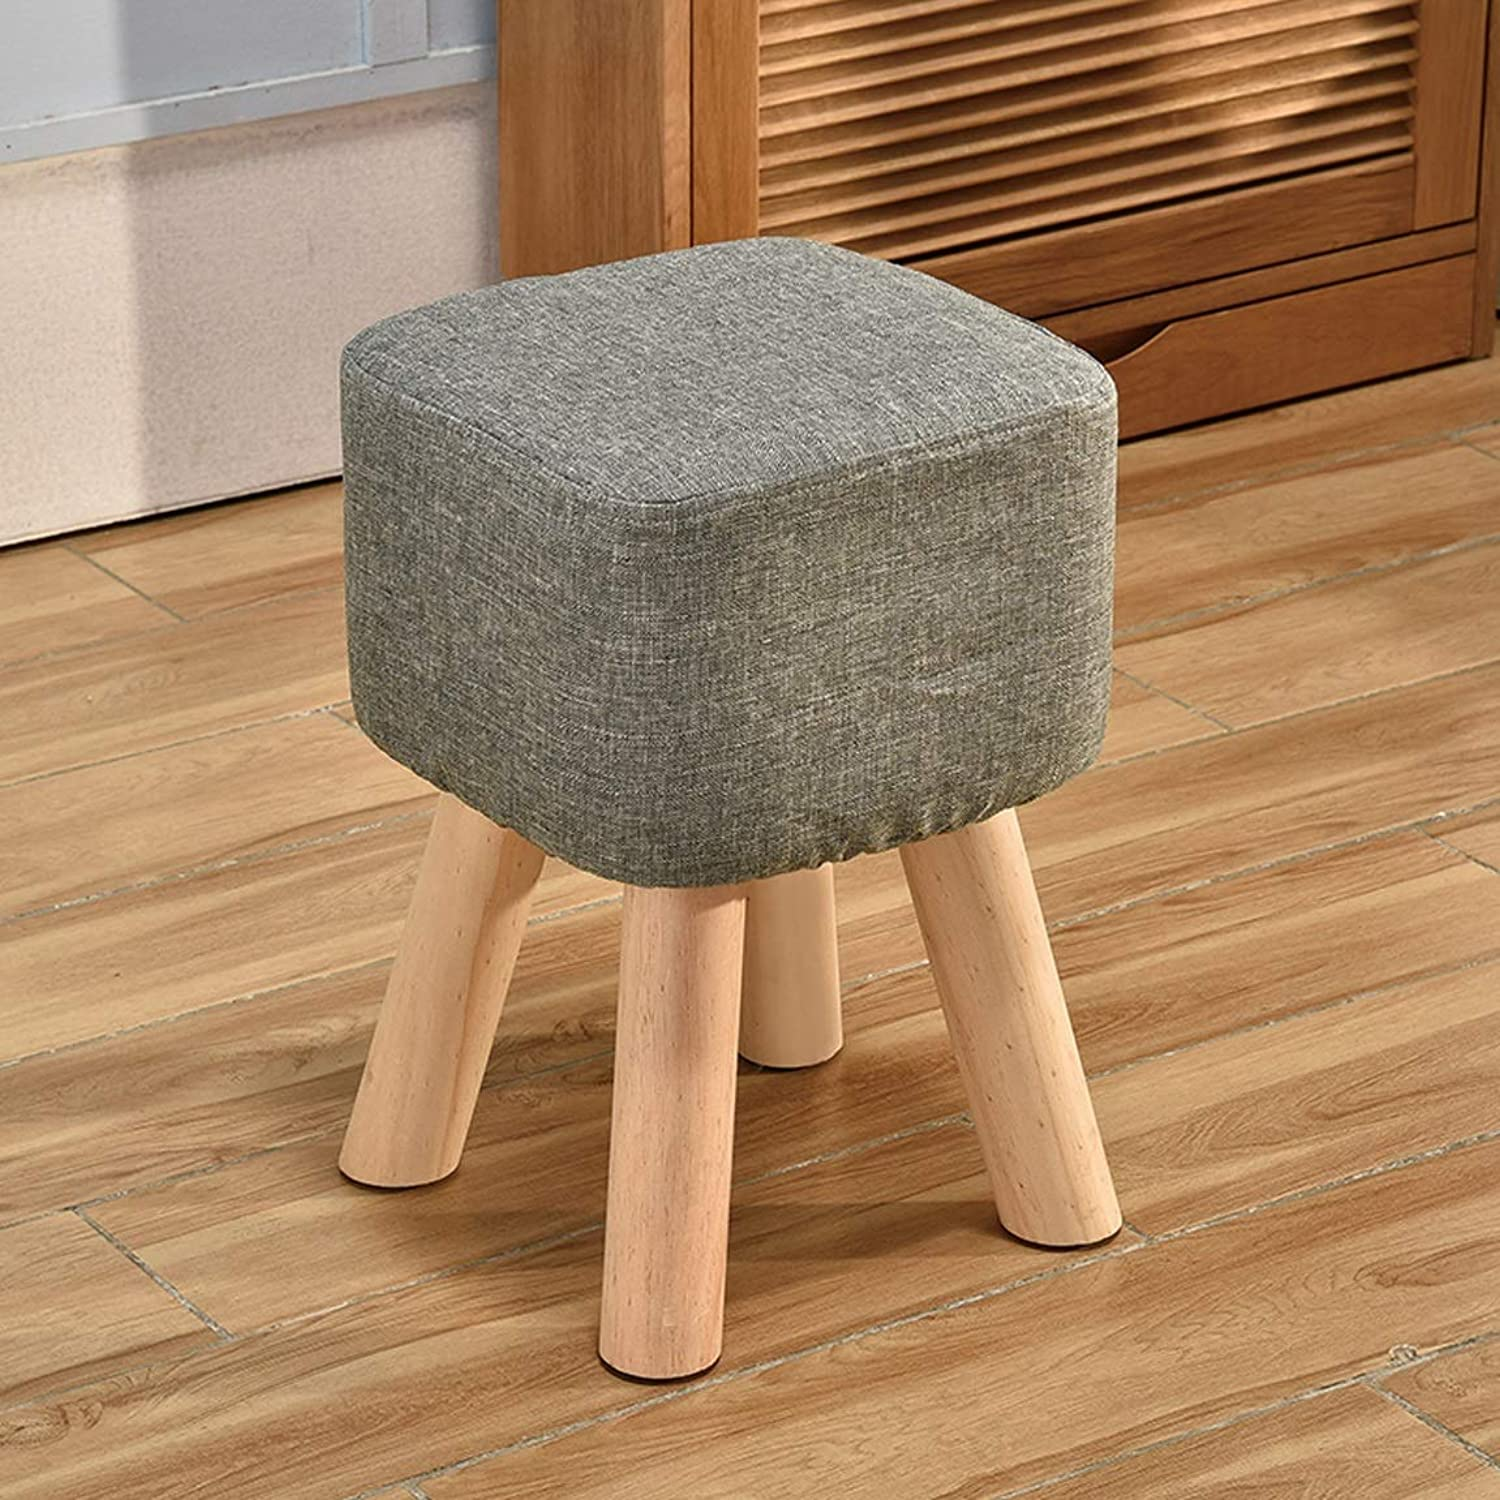 HZB Household Small Stool Creative Living Room shoes Stool Fashion Adult Square Stool Sofa Sofa Stool Bench (color   Grey Green)